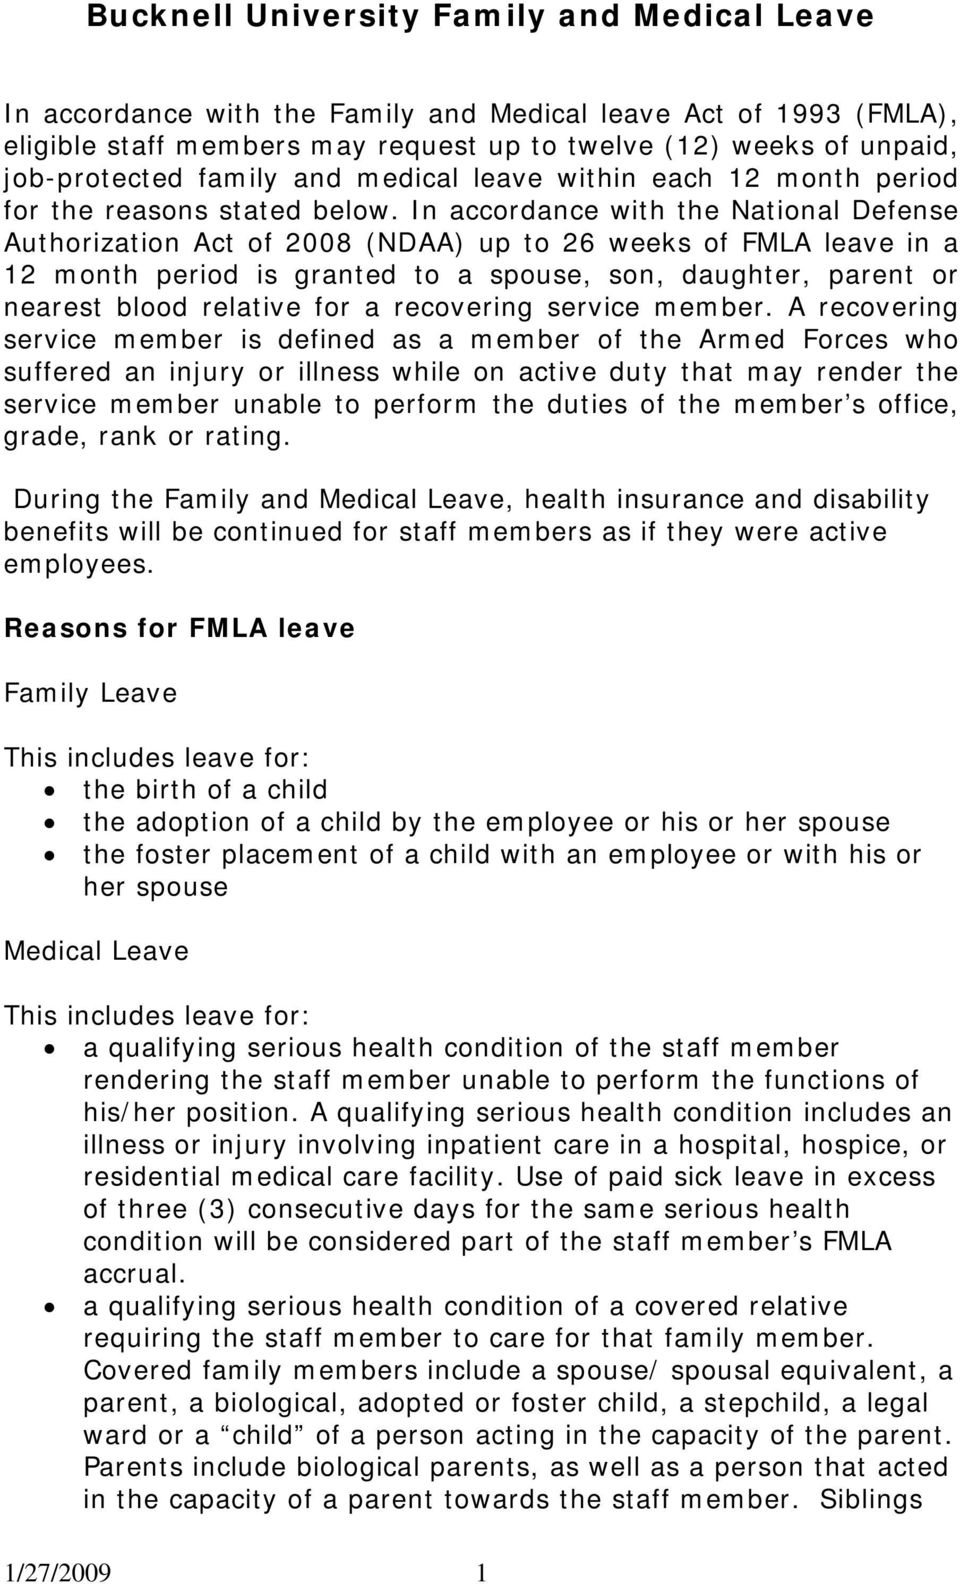 In accordance with the National Defense Authorization Act of 2008 (NDAA) up to 26 weeks of FMLA leave in a 12 month period is granted to a spouse, son, daughter, parent or nearest blood relative for